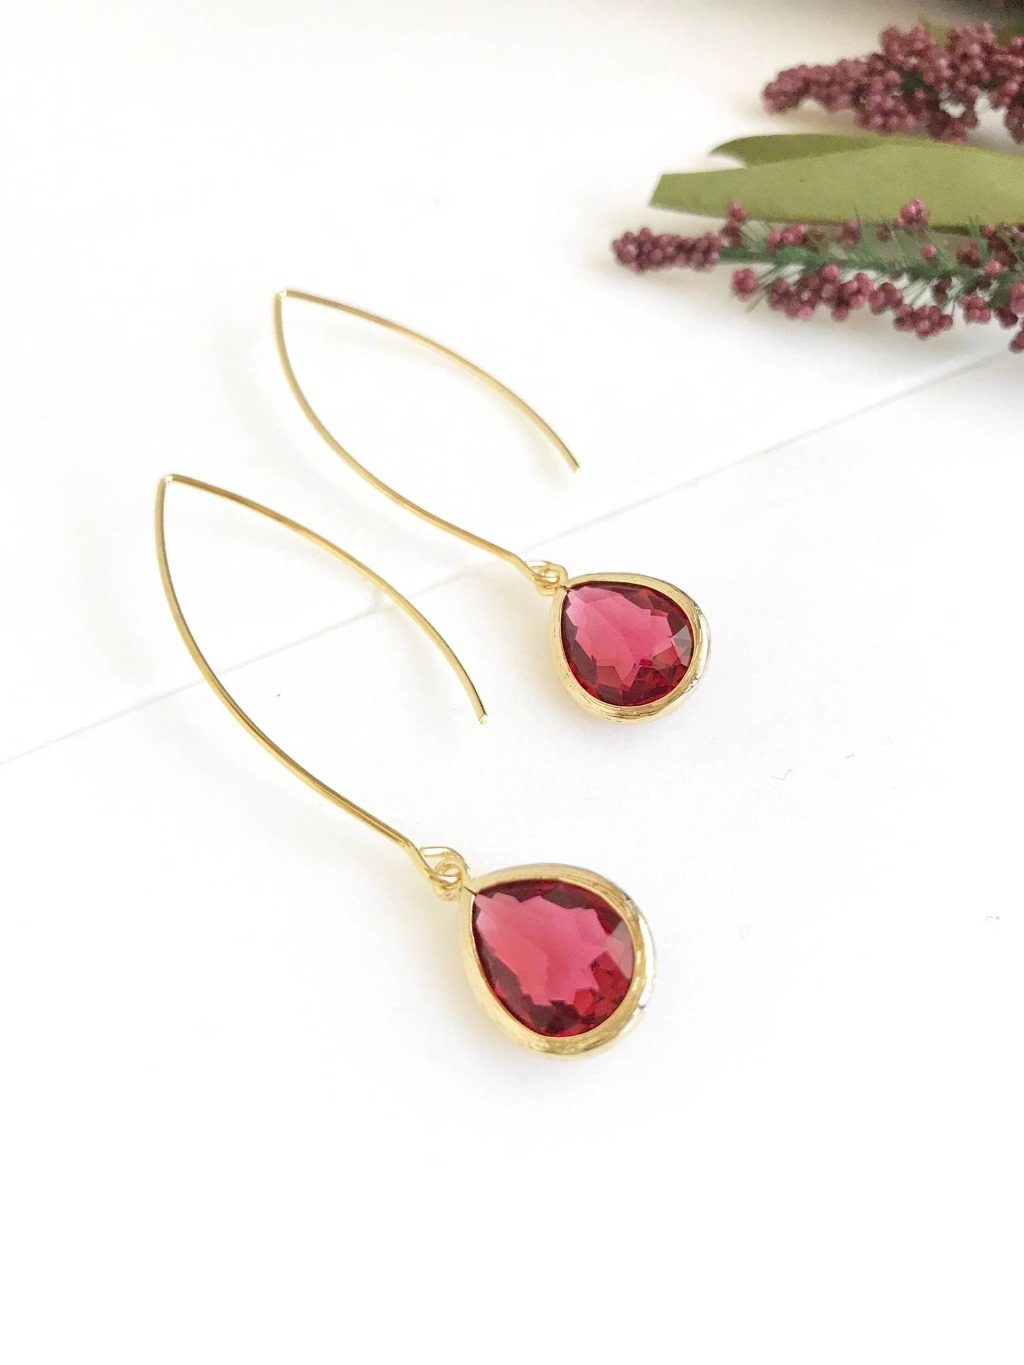 Ruby red and gold are paired beautifully in these elegant and stunning earrings. Alive and gorgeous, these earrings will add a beautiful